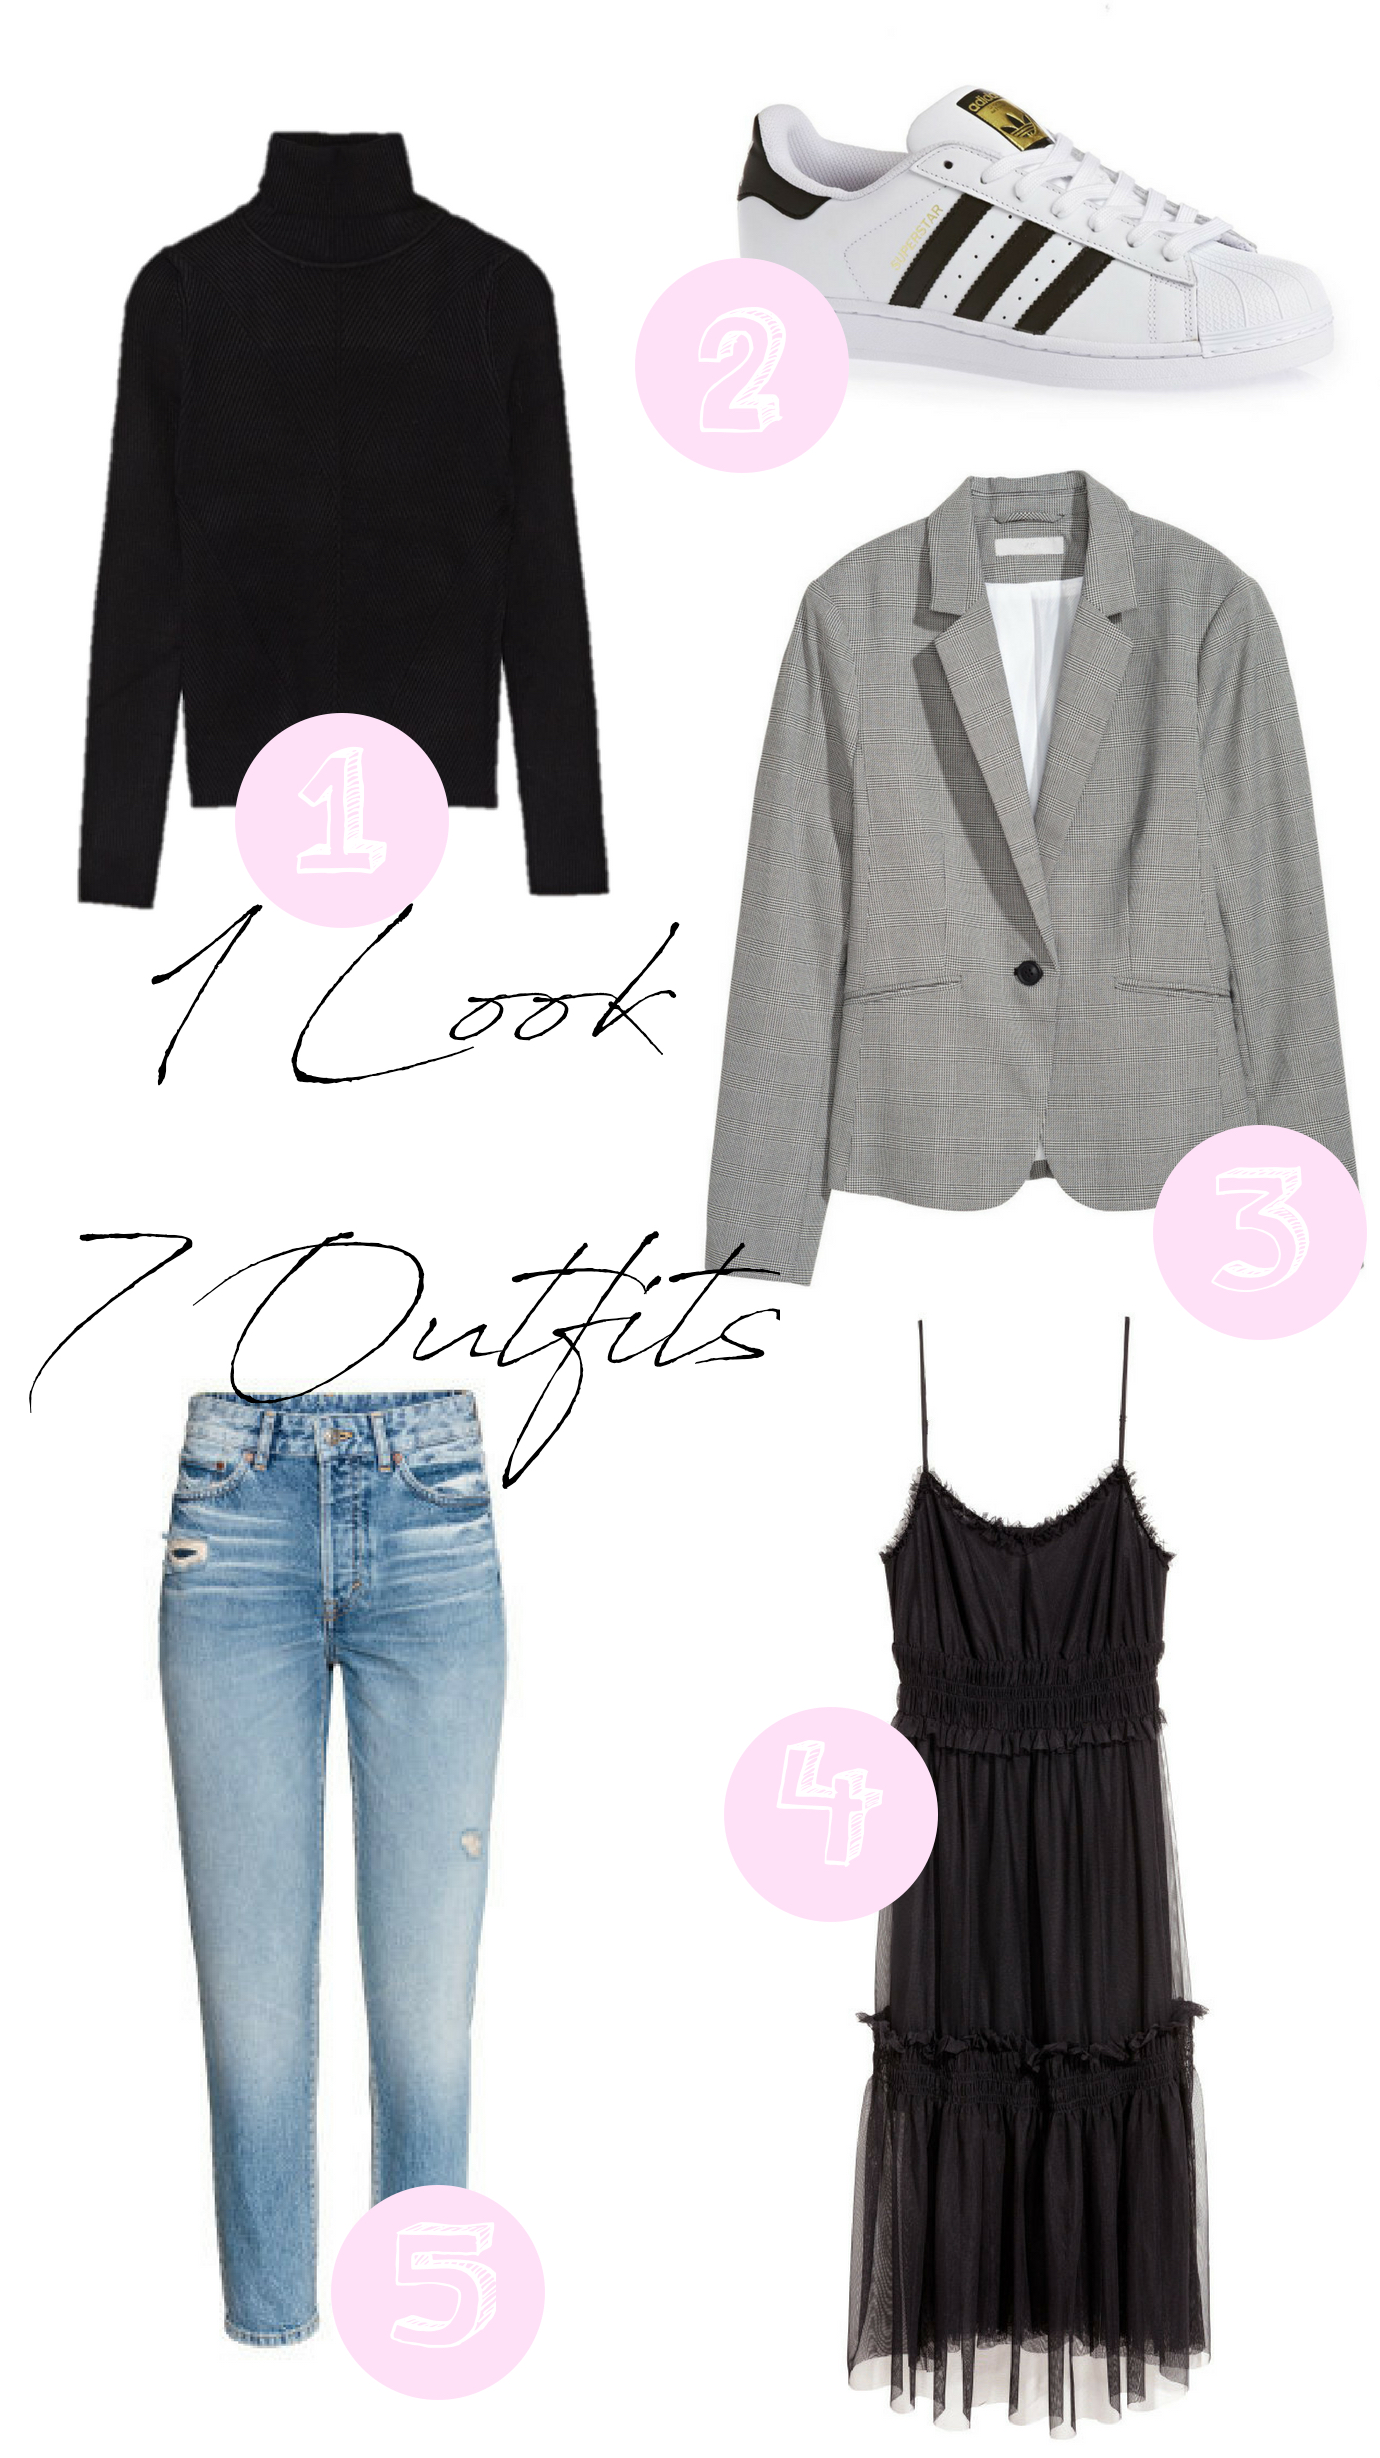 Outfit-ideas-1 look-7 outfits-tips